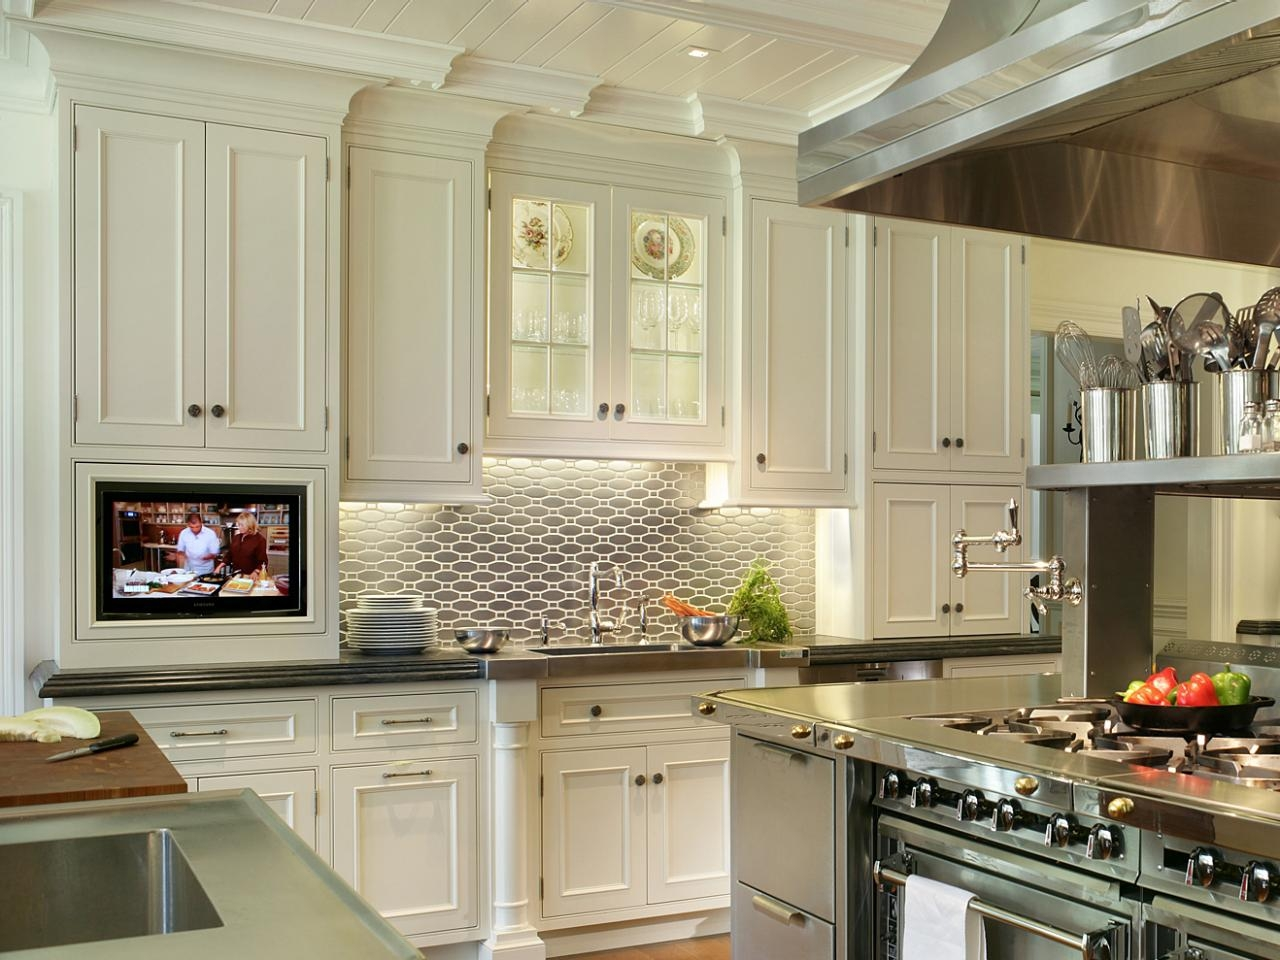 Extra Tall Upper Kitchen Cabinets